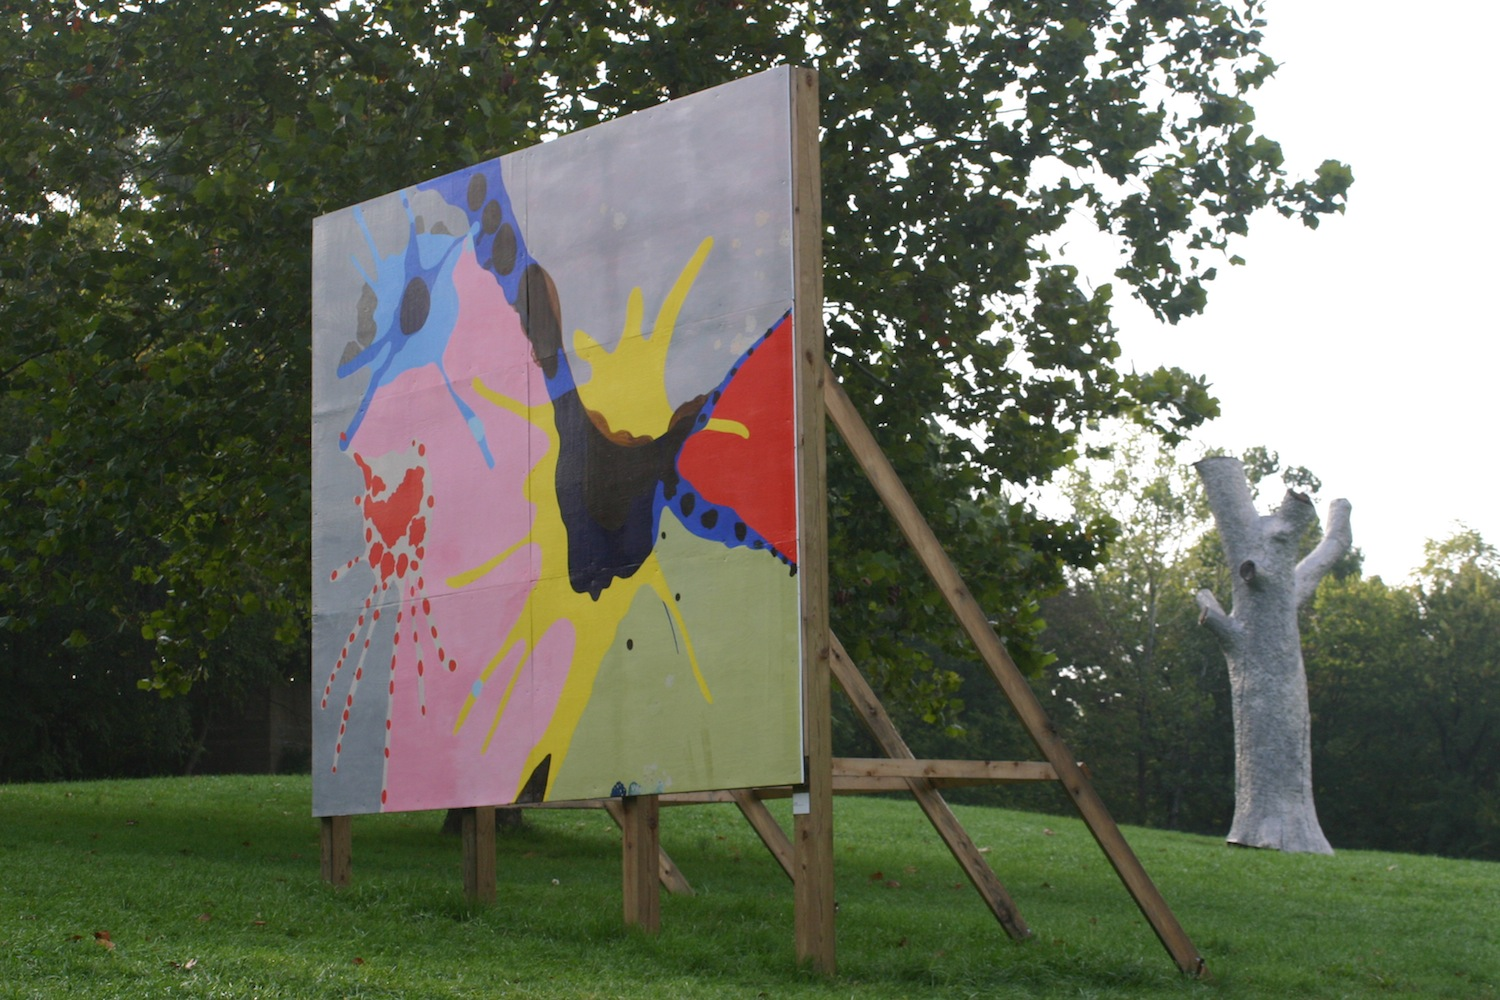 The Dance,  2005  acrylic on wood  12 x 16 feet  Laumeier Sculpture Park, Saint Louis